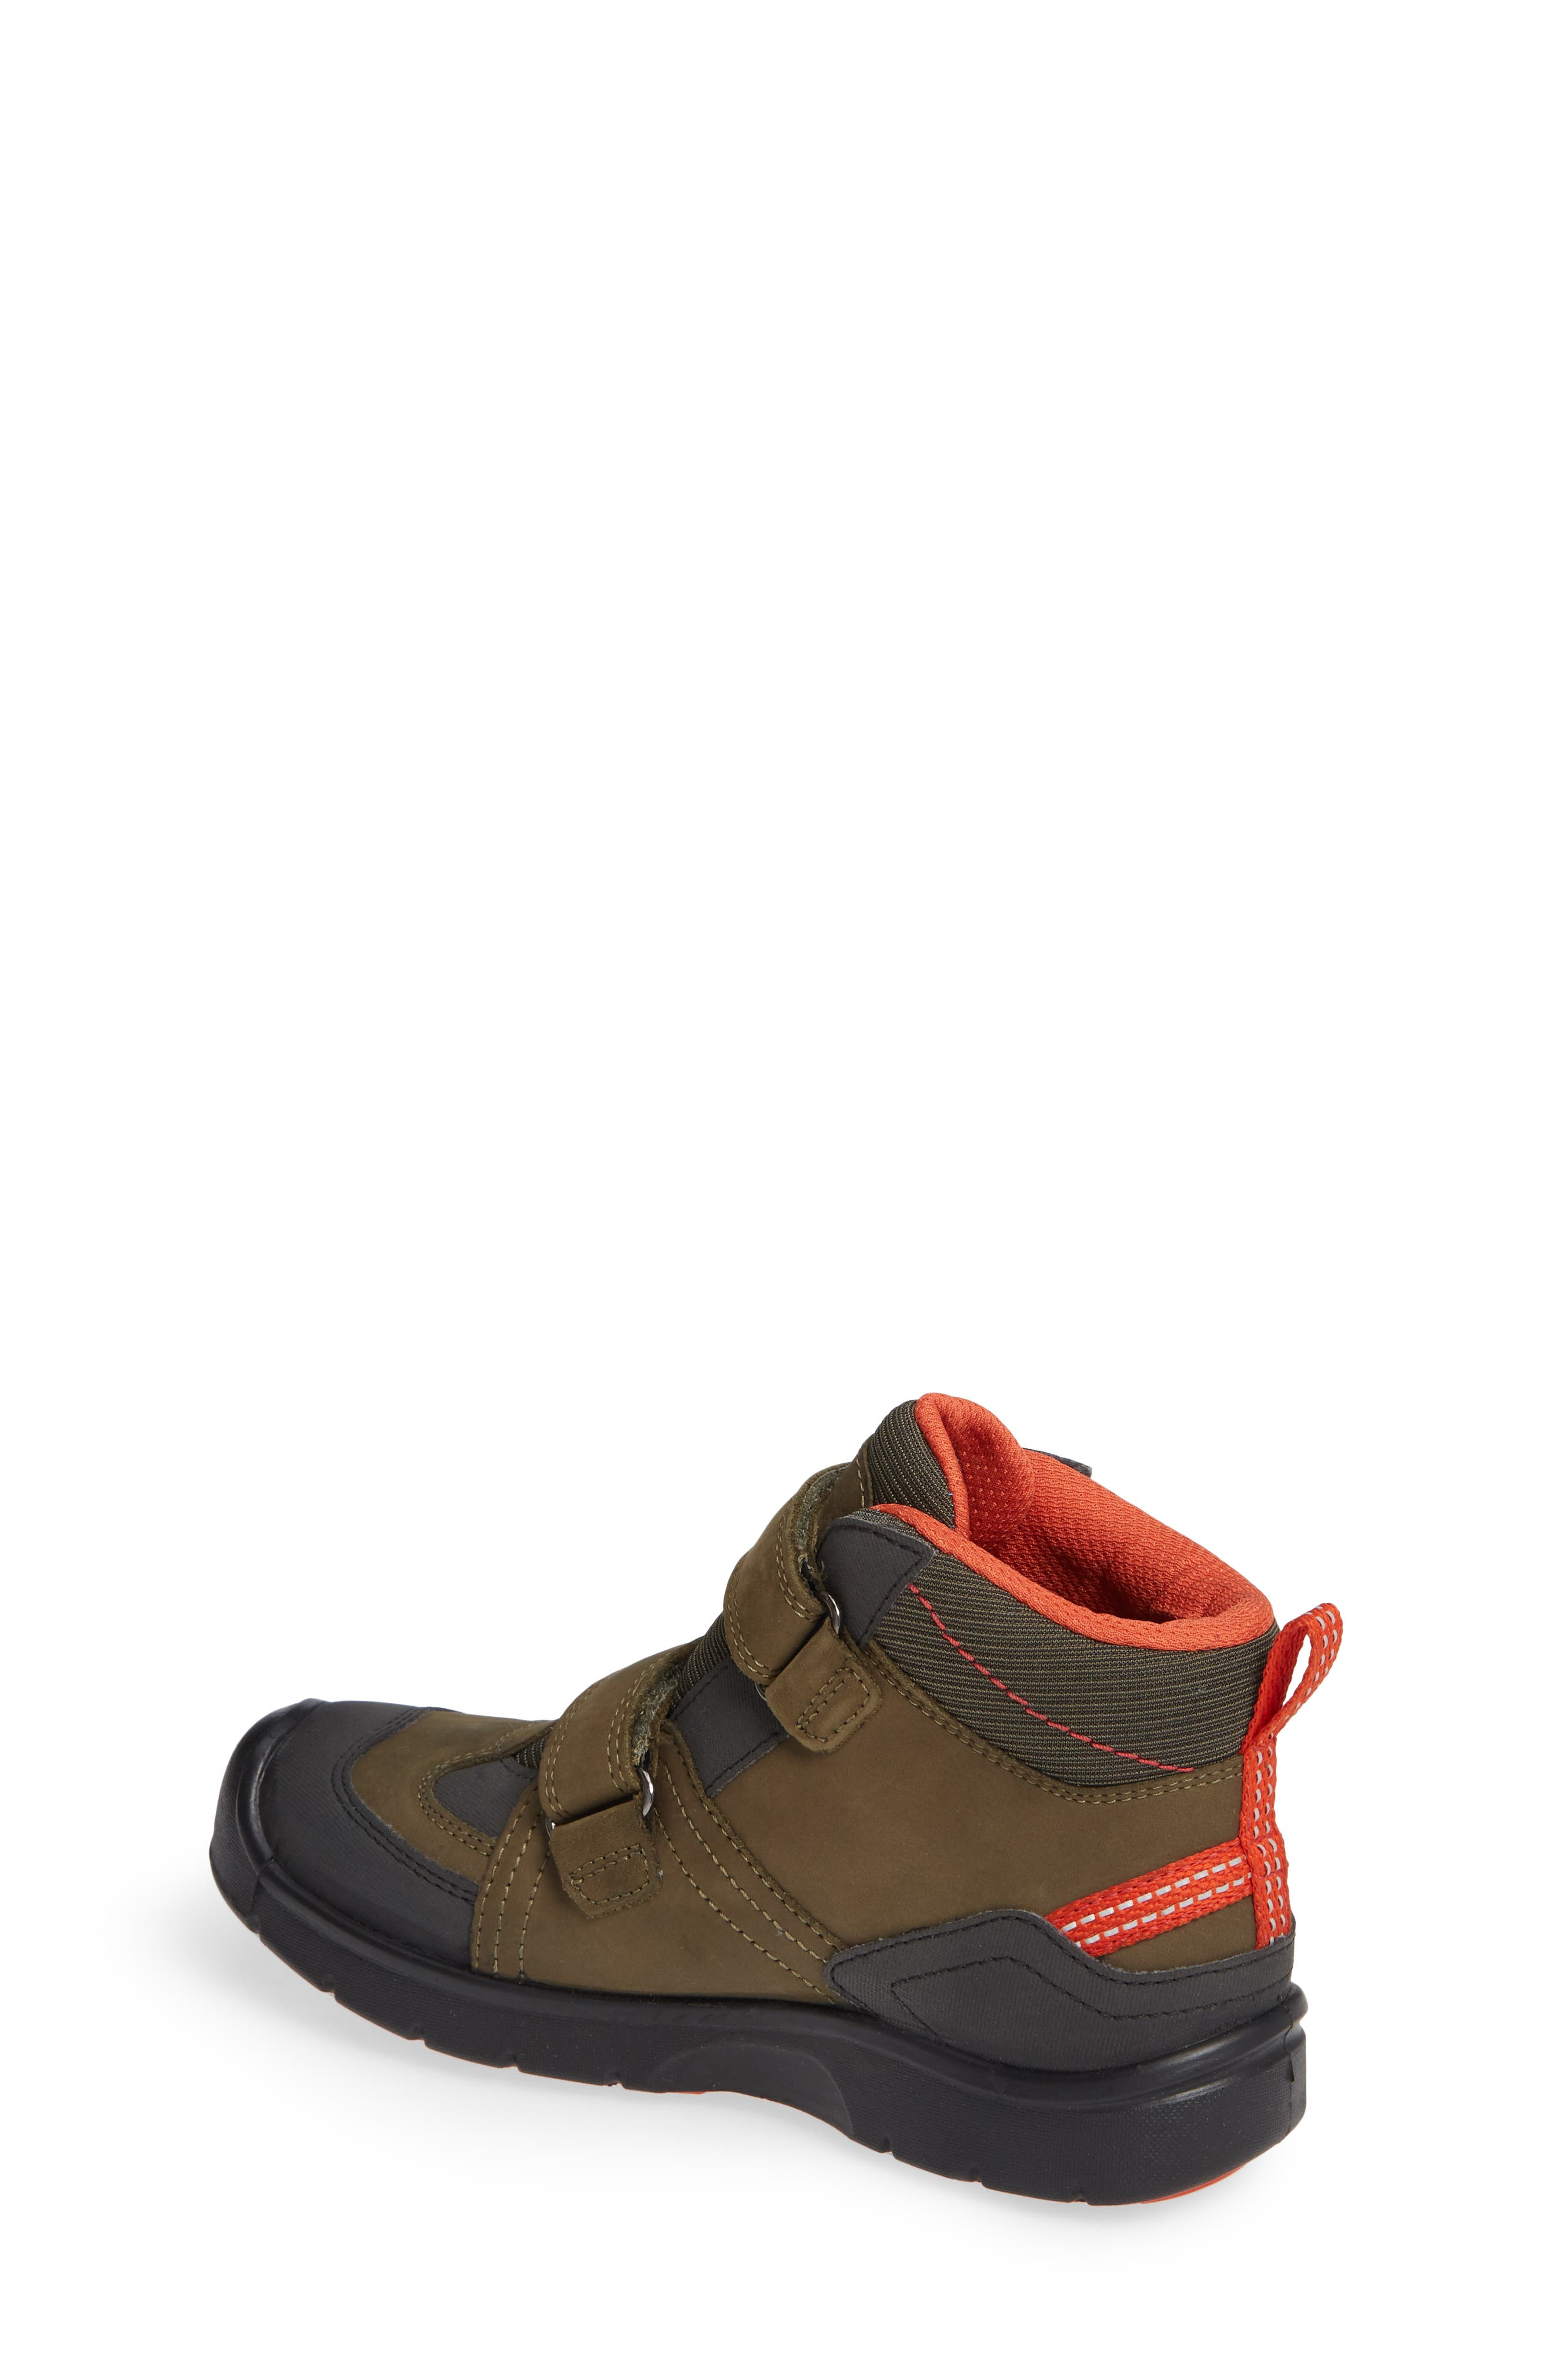 KEEN, Hikeport Strap Waterproof Mid Boot, Alternate thumbnail 2, color, MARTINI OLIVE/ PUMPKIN